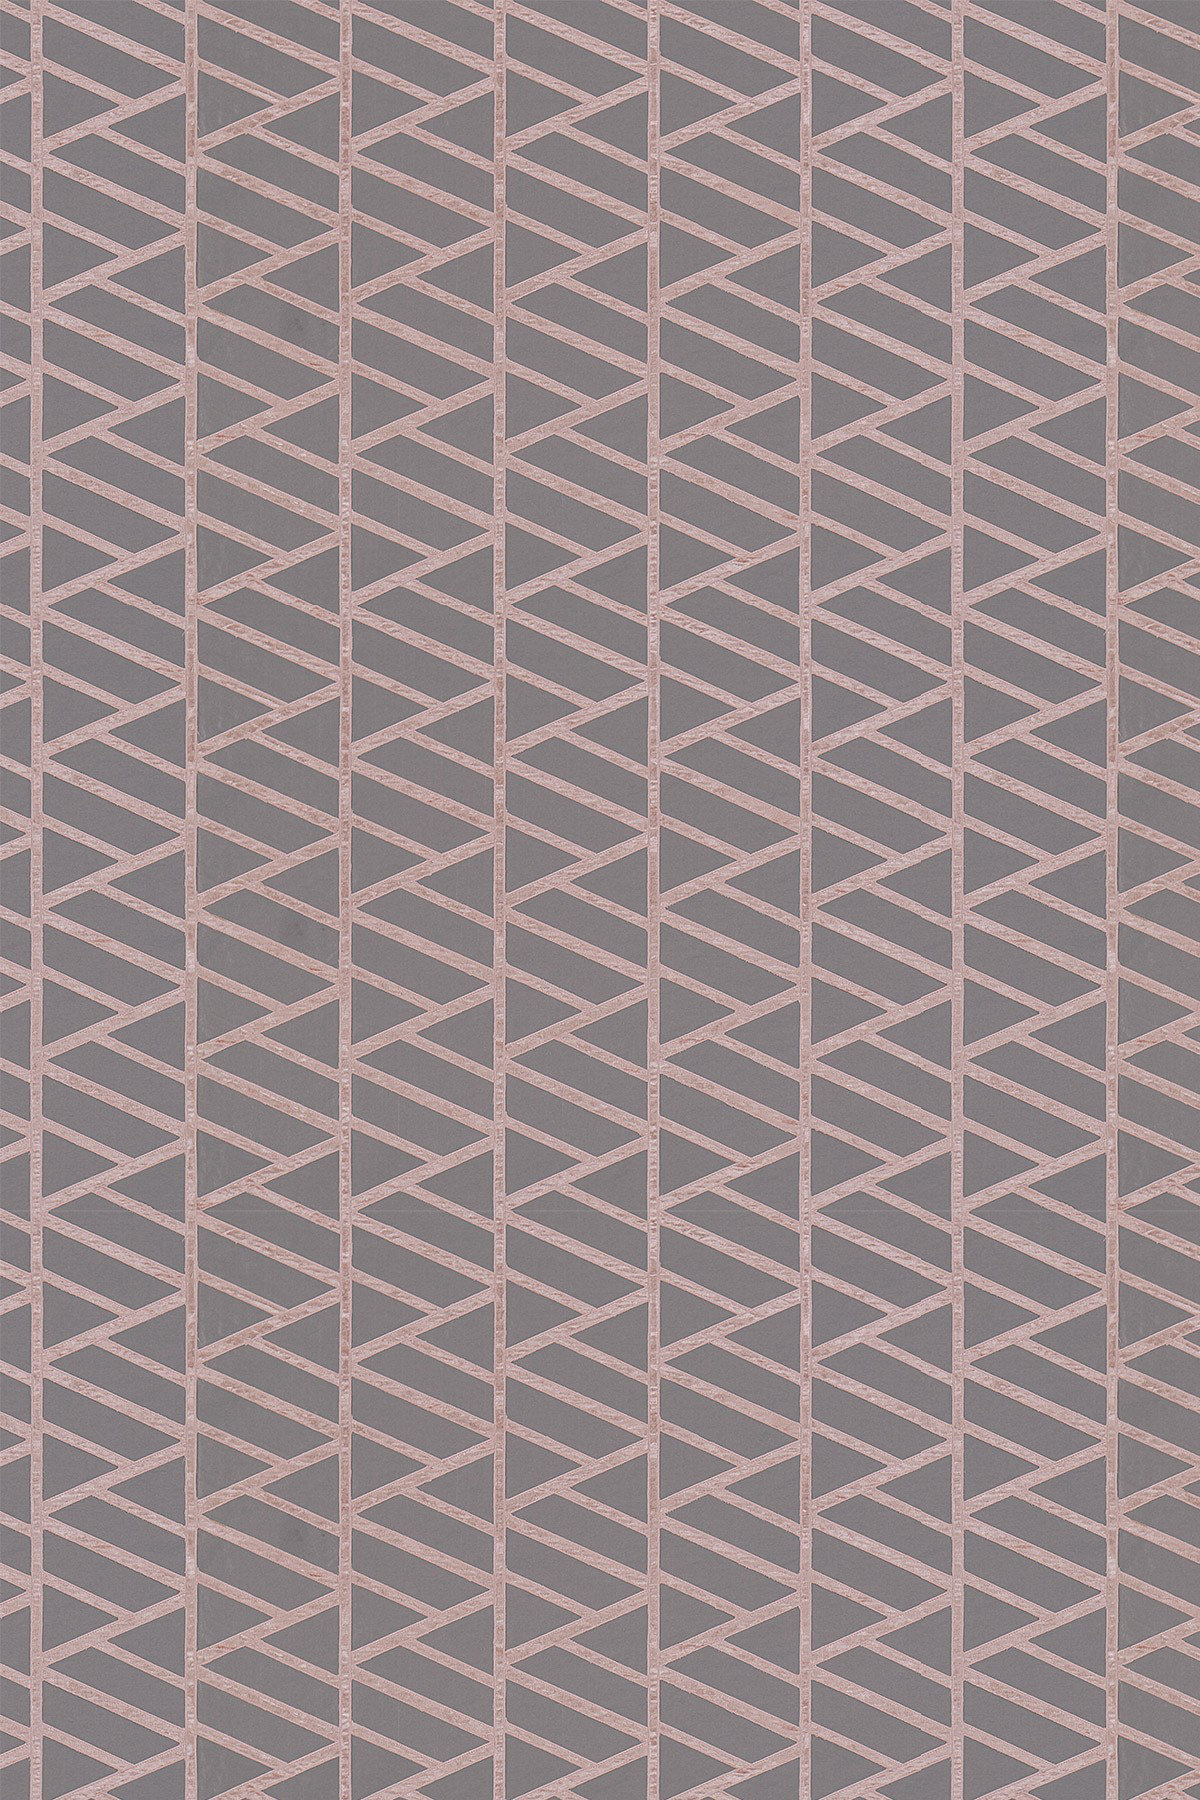 Image of Harlequin Fabric Alvar, 131581